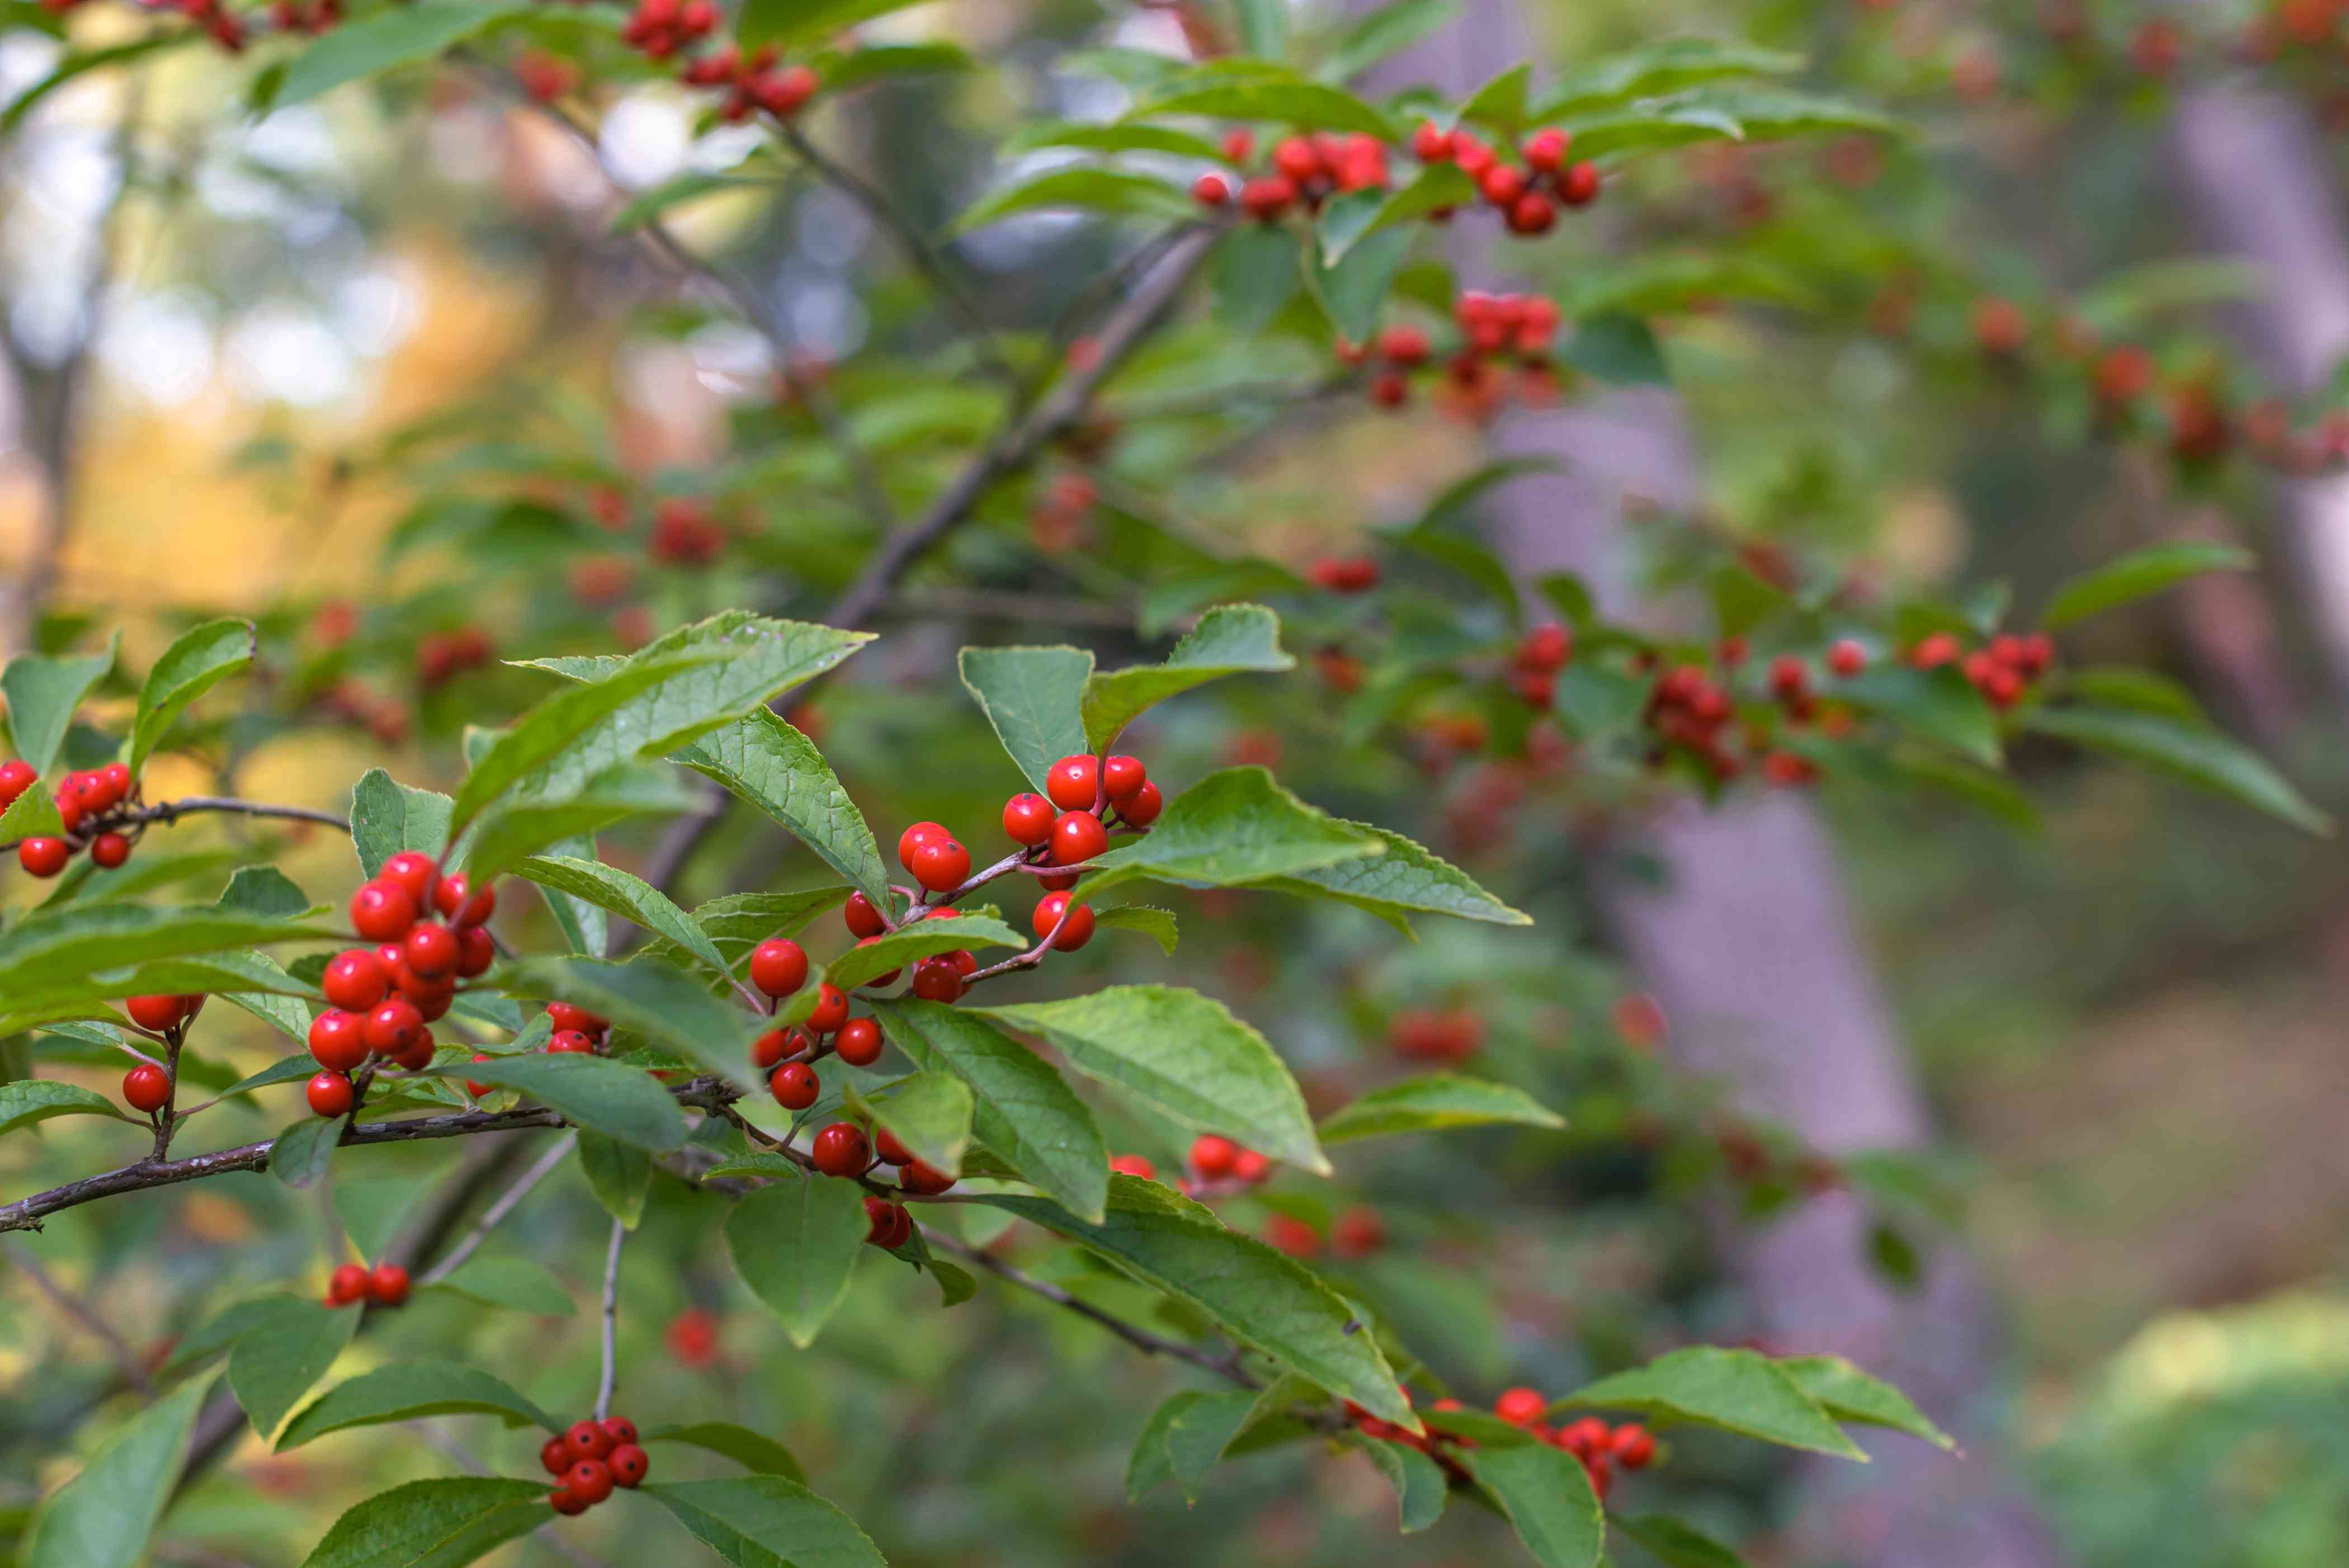 Common winterberry shrub branches with clusters of scarlet berries on branches closeup